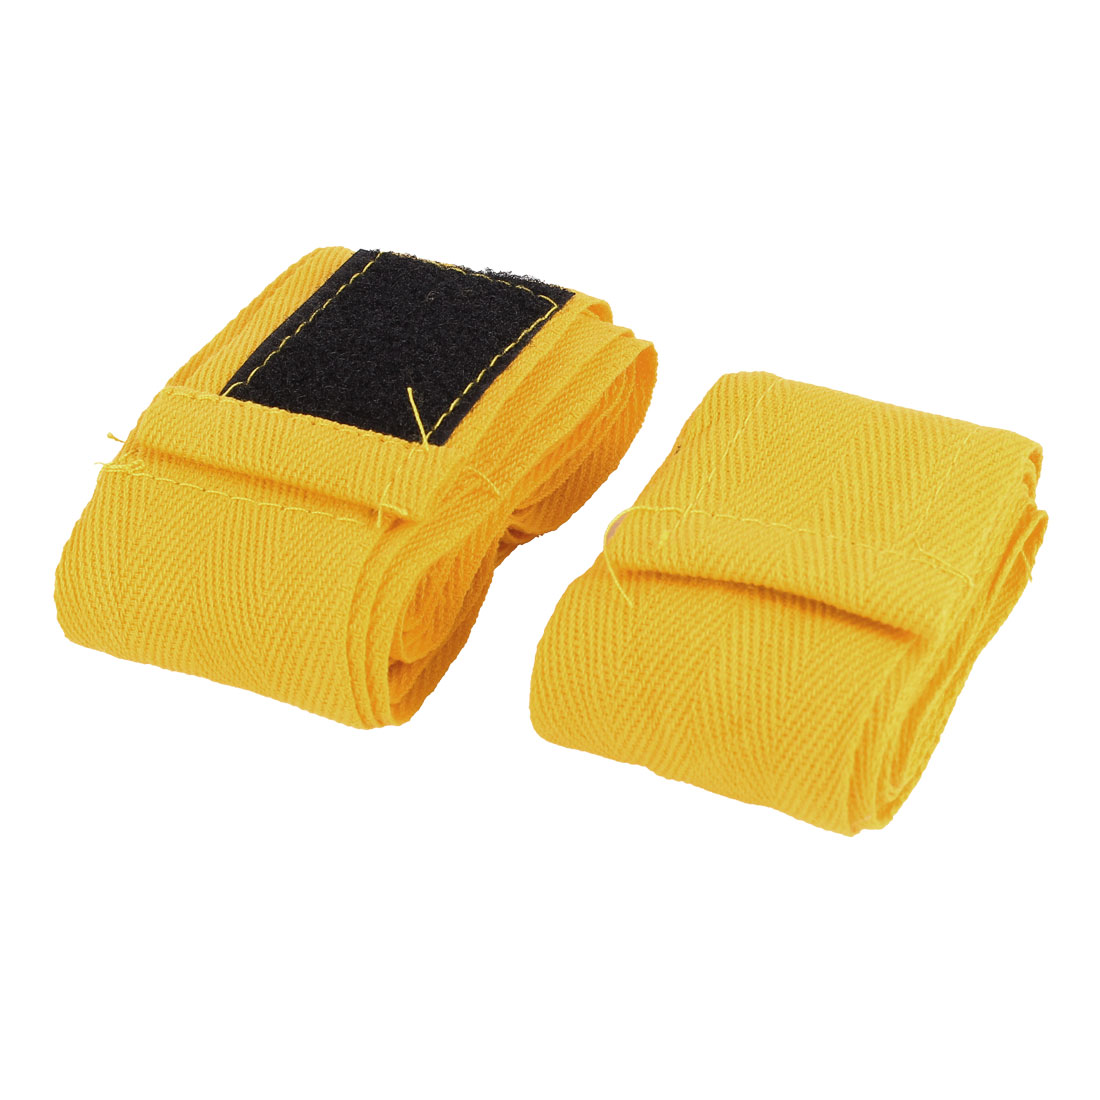 6.3Ft Long Yellow Cotton Polyester Boxing Hand Wrap Bandage Pairs